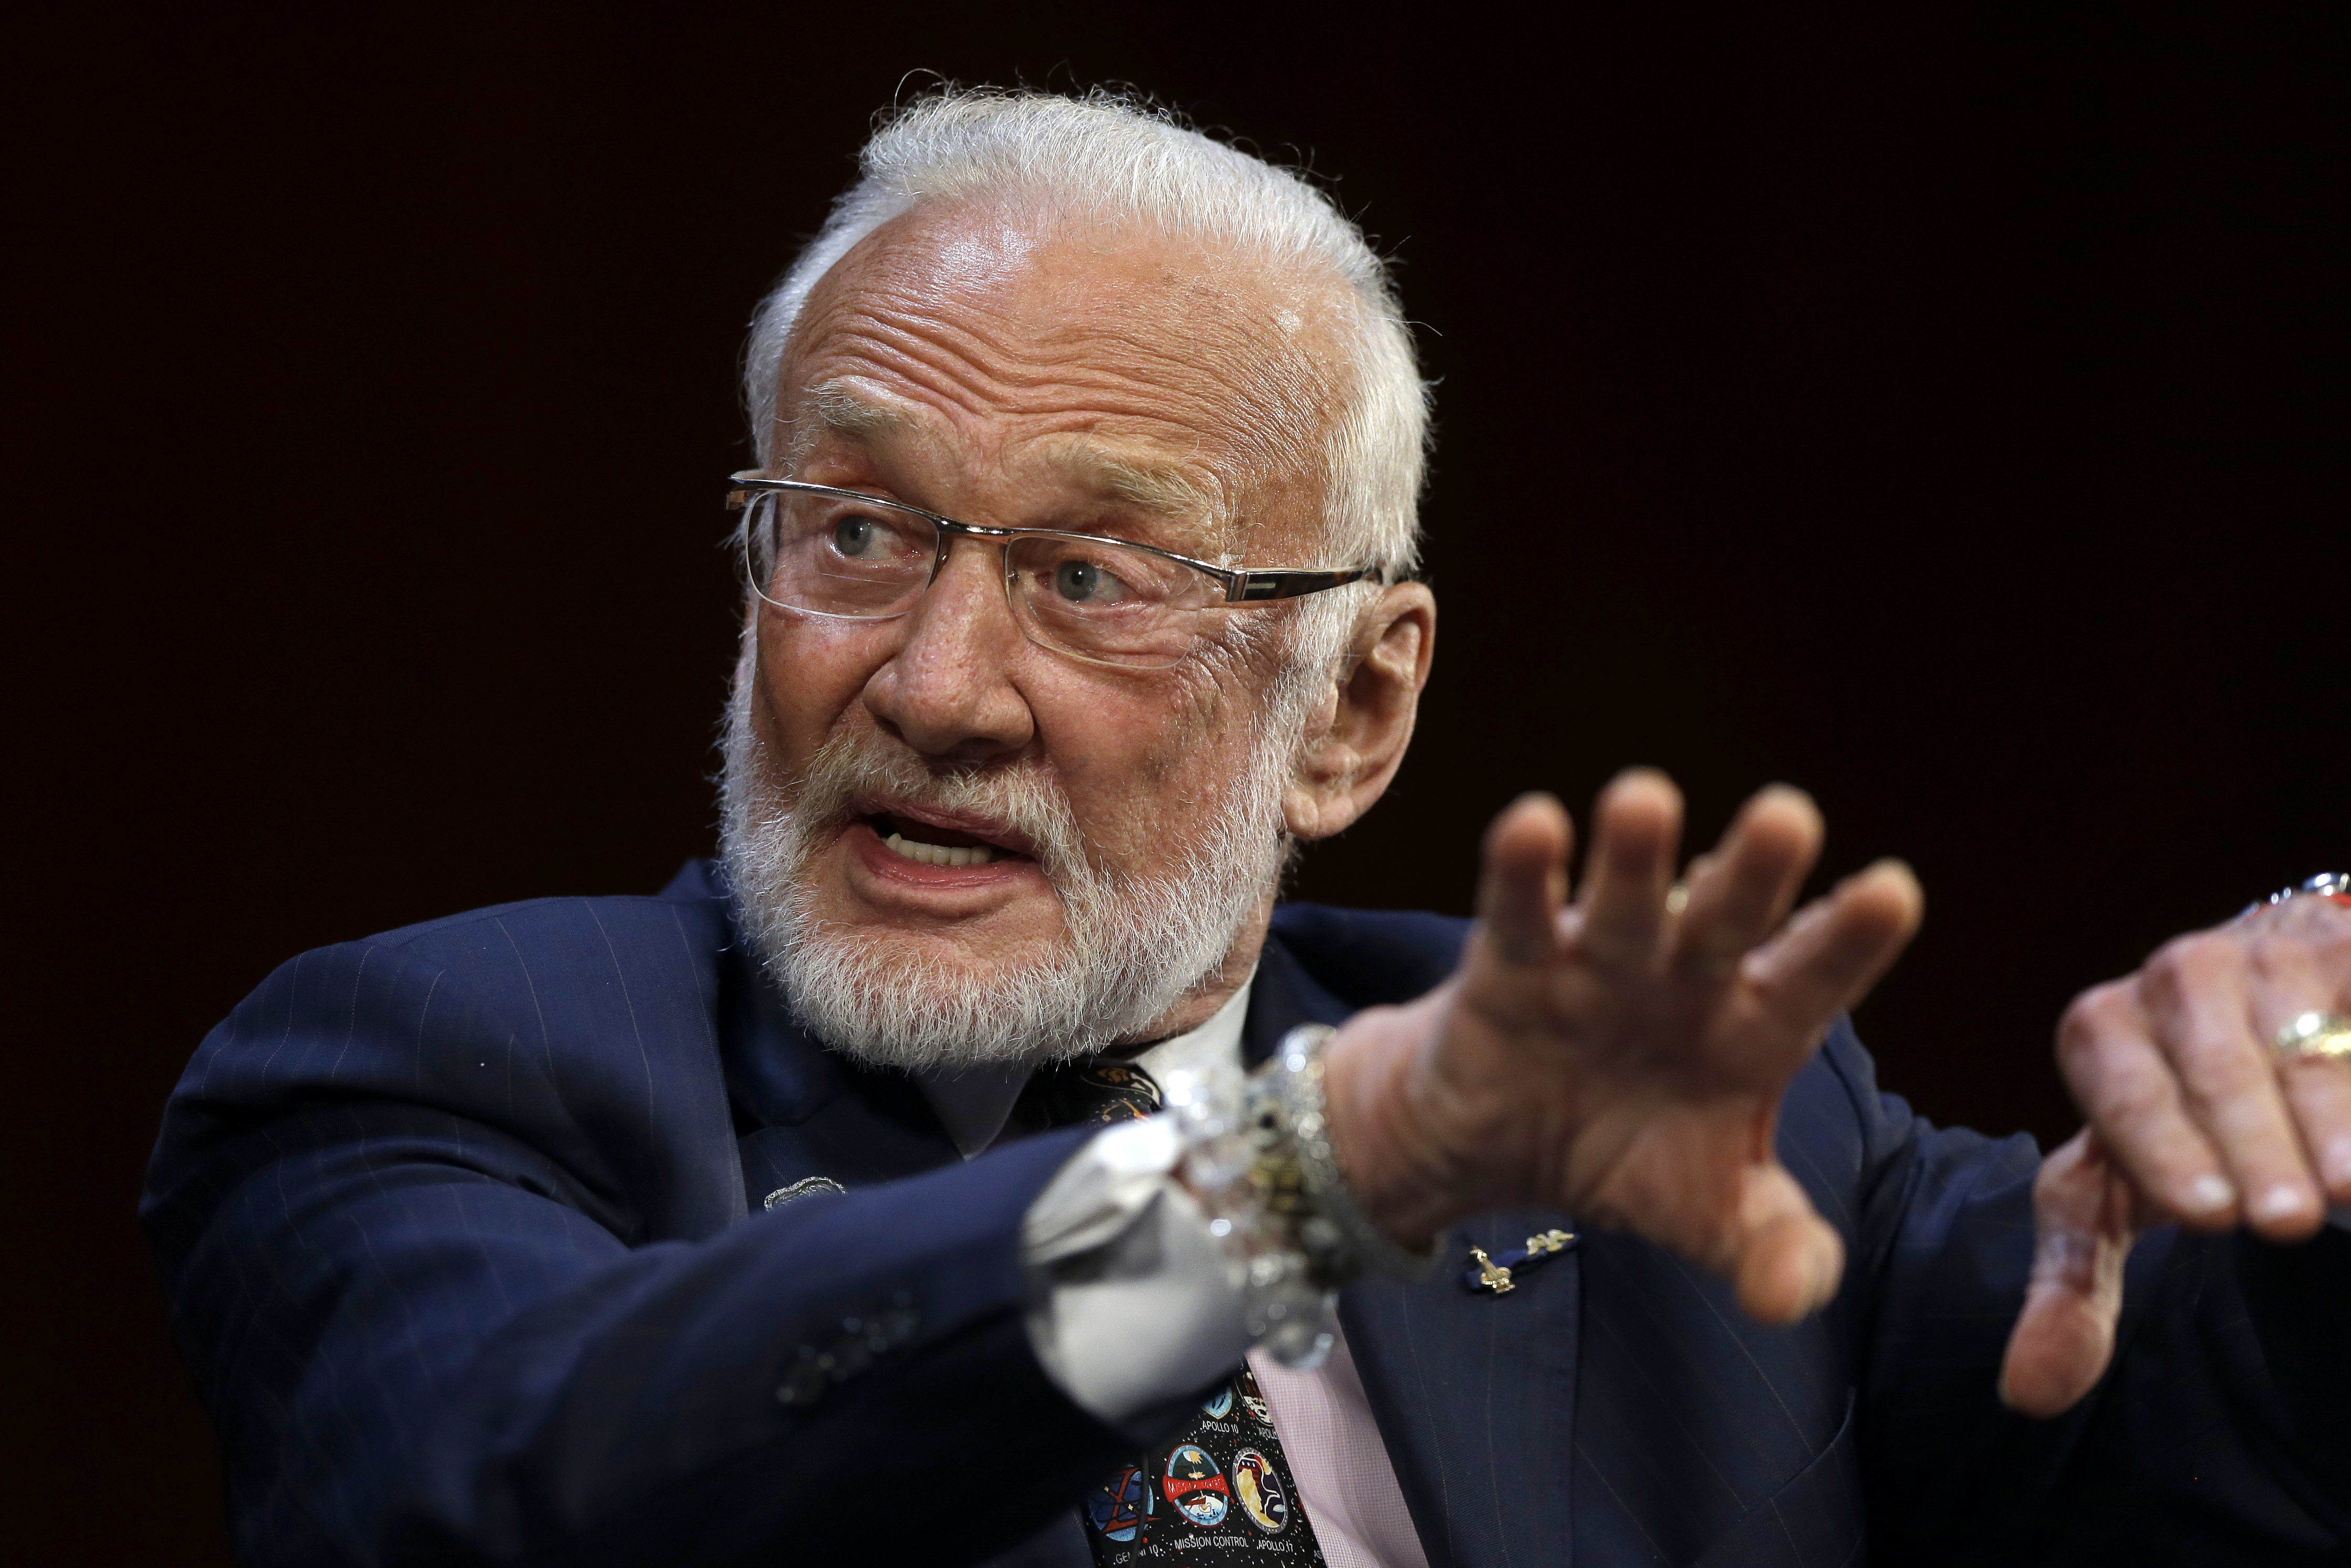 FILE - In this Oct. 22, 2014, file photo, Apollo 11 astronaut Buzz Aldrin, the second person to walk on the Moon, speaks on the campus of Massachusetts Institute of Technology in Cambridge, Mass. Aldrin is hosting a gala for his nonprofit space education foundation, ShareSpace Foundation, at the Kennedy Space Center in Cape Canaveral, Fla., on Saturday, July 15, 2017. The event will raise money and commemorate the 48th anniversary of the Apollo 11 mission. (AP Photo/Steven Senne, File)